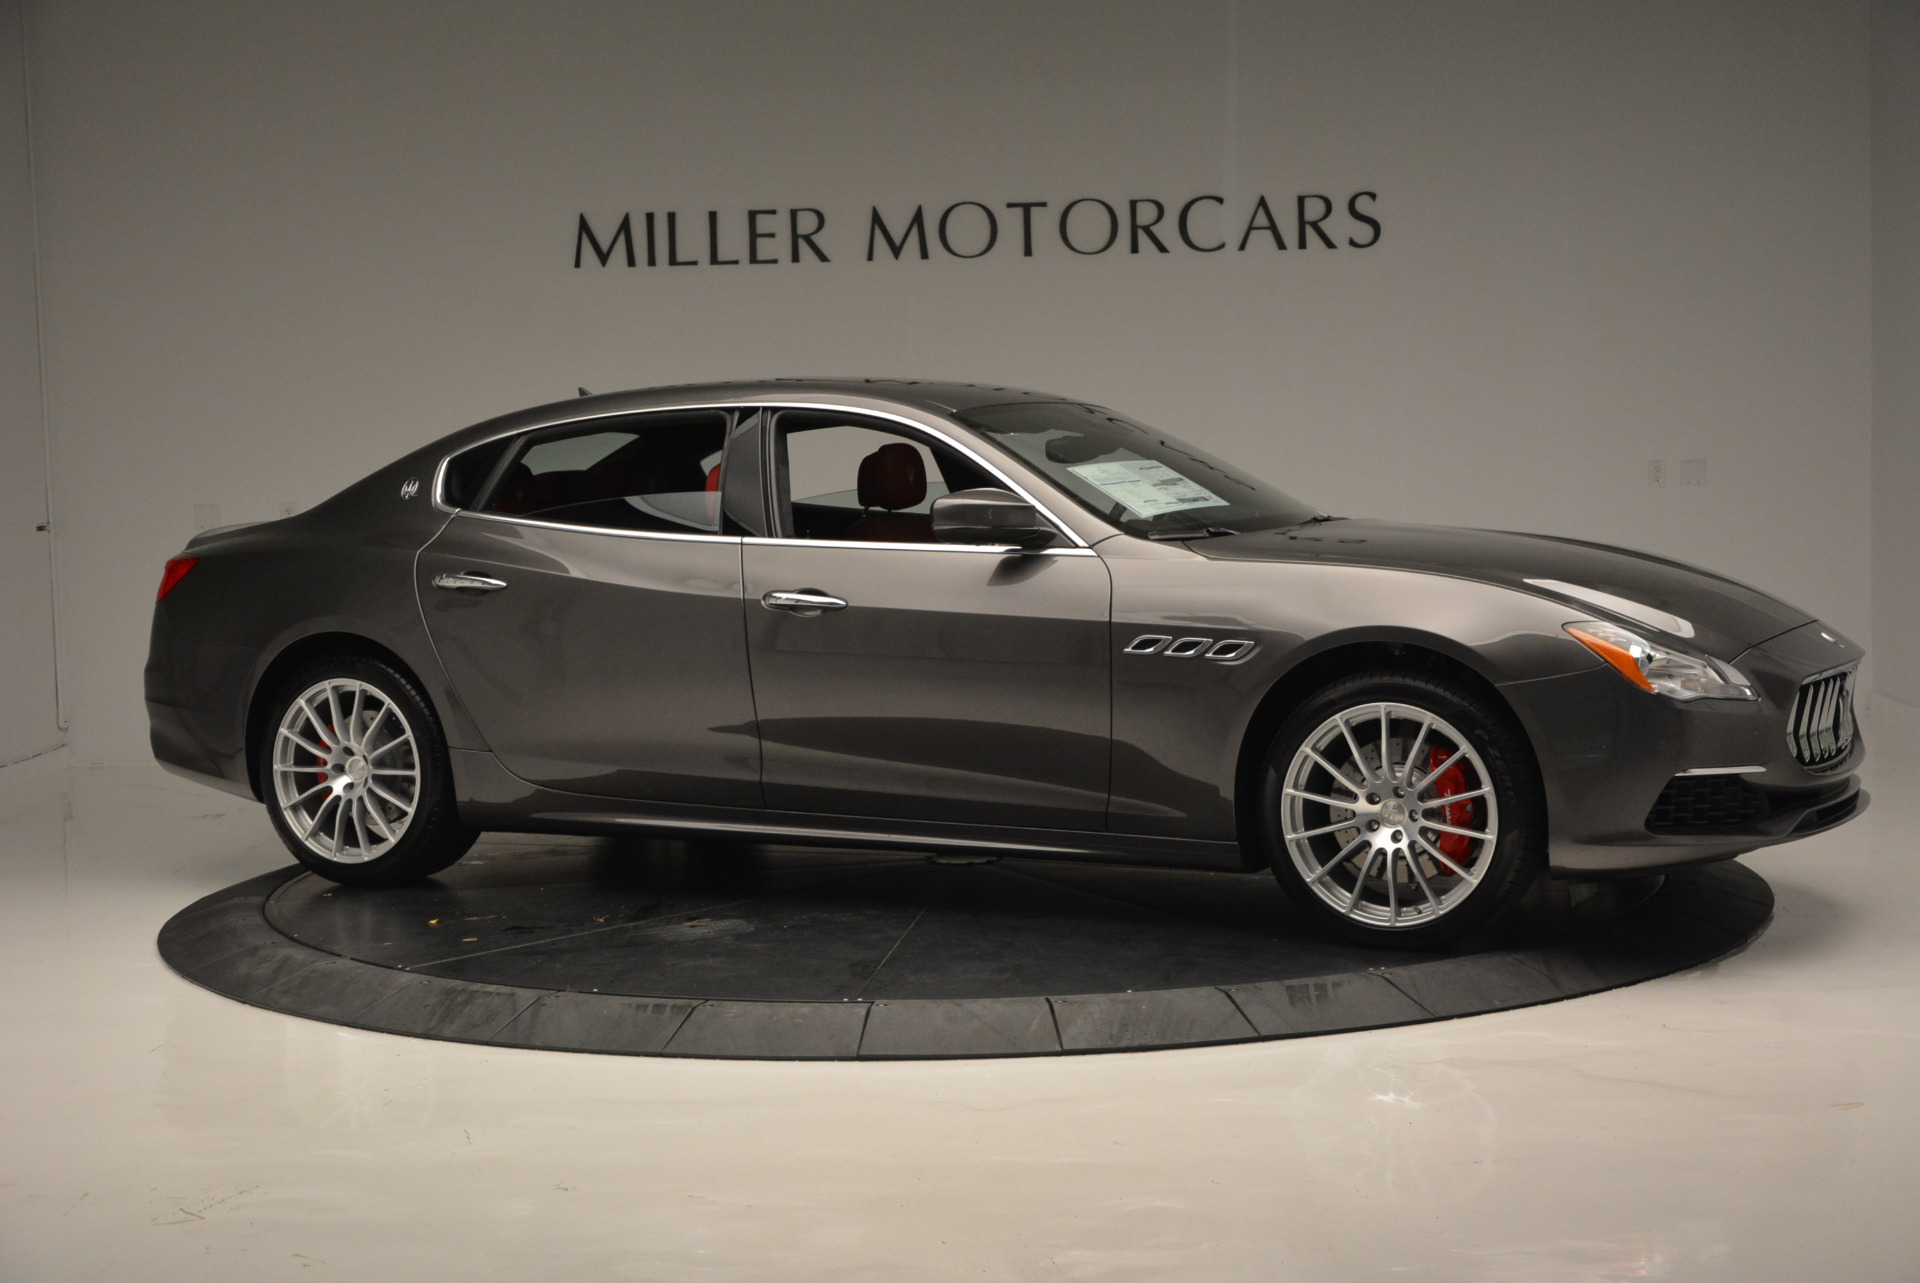 New 2017 Maserati Quattroporte S Q4 GranLusso For Sale In Greenwich, CT 585_p10